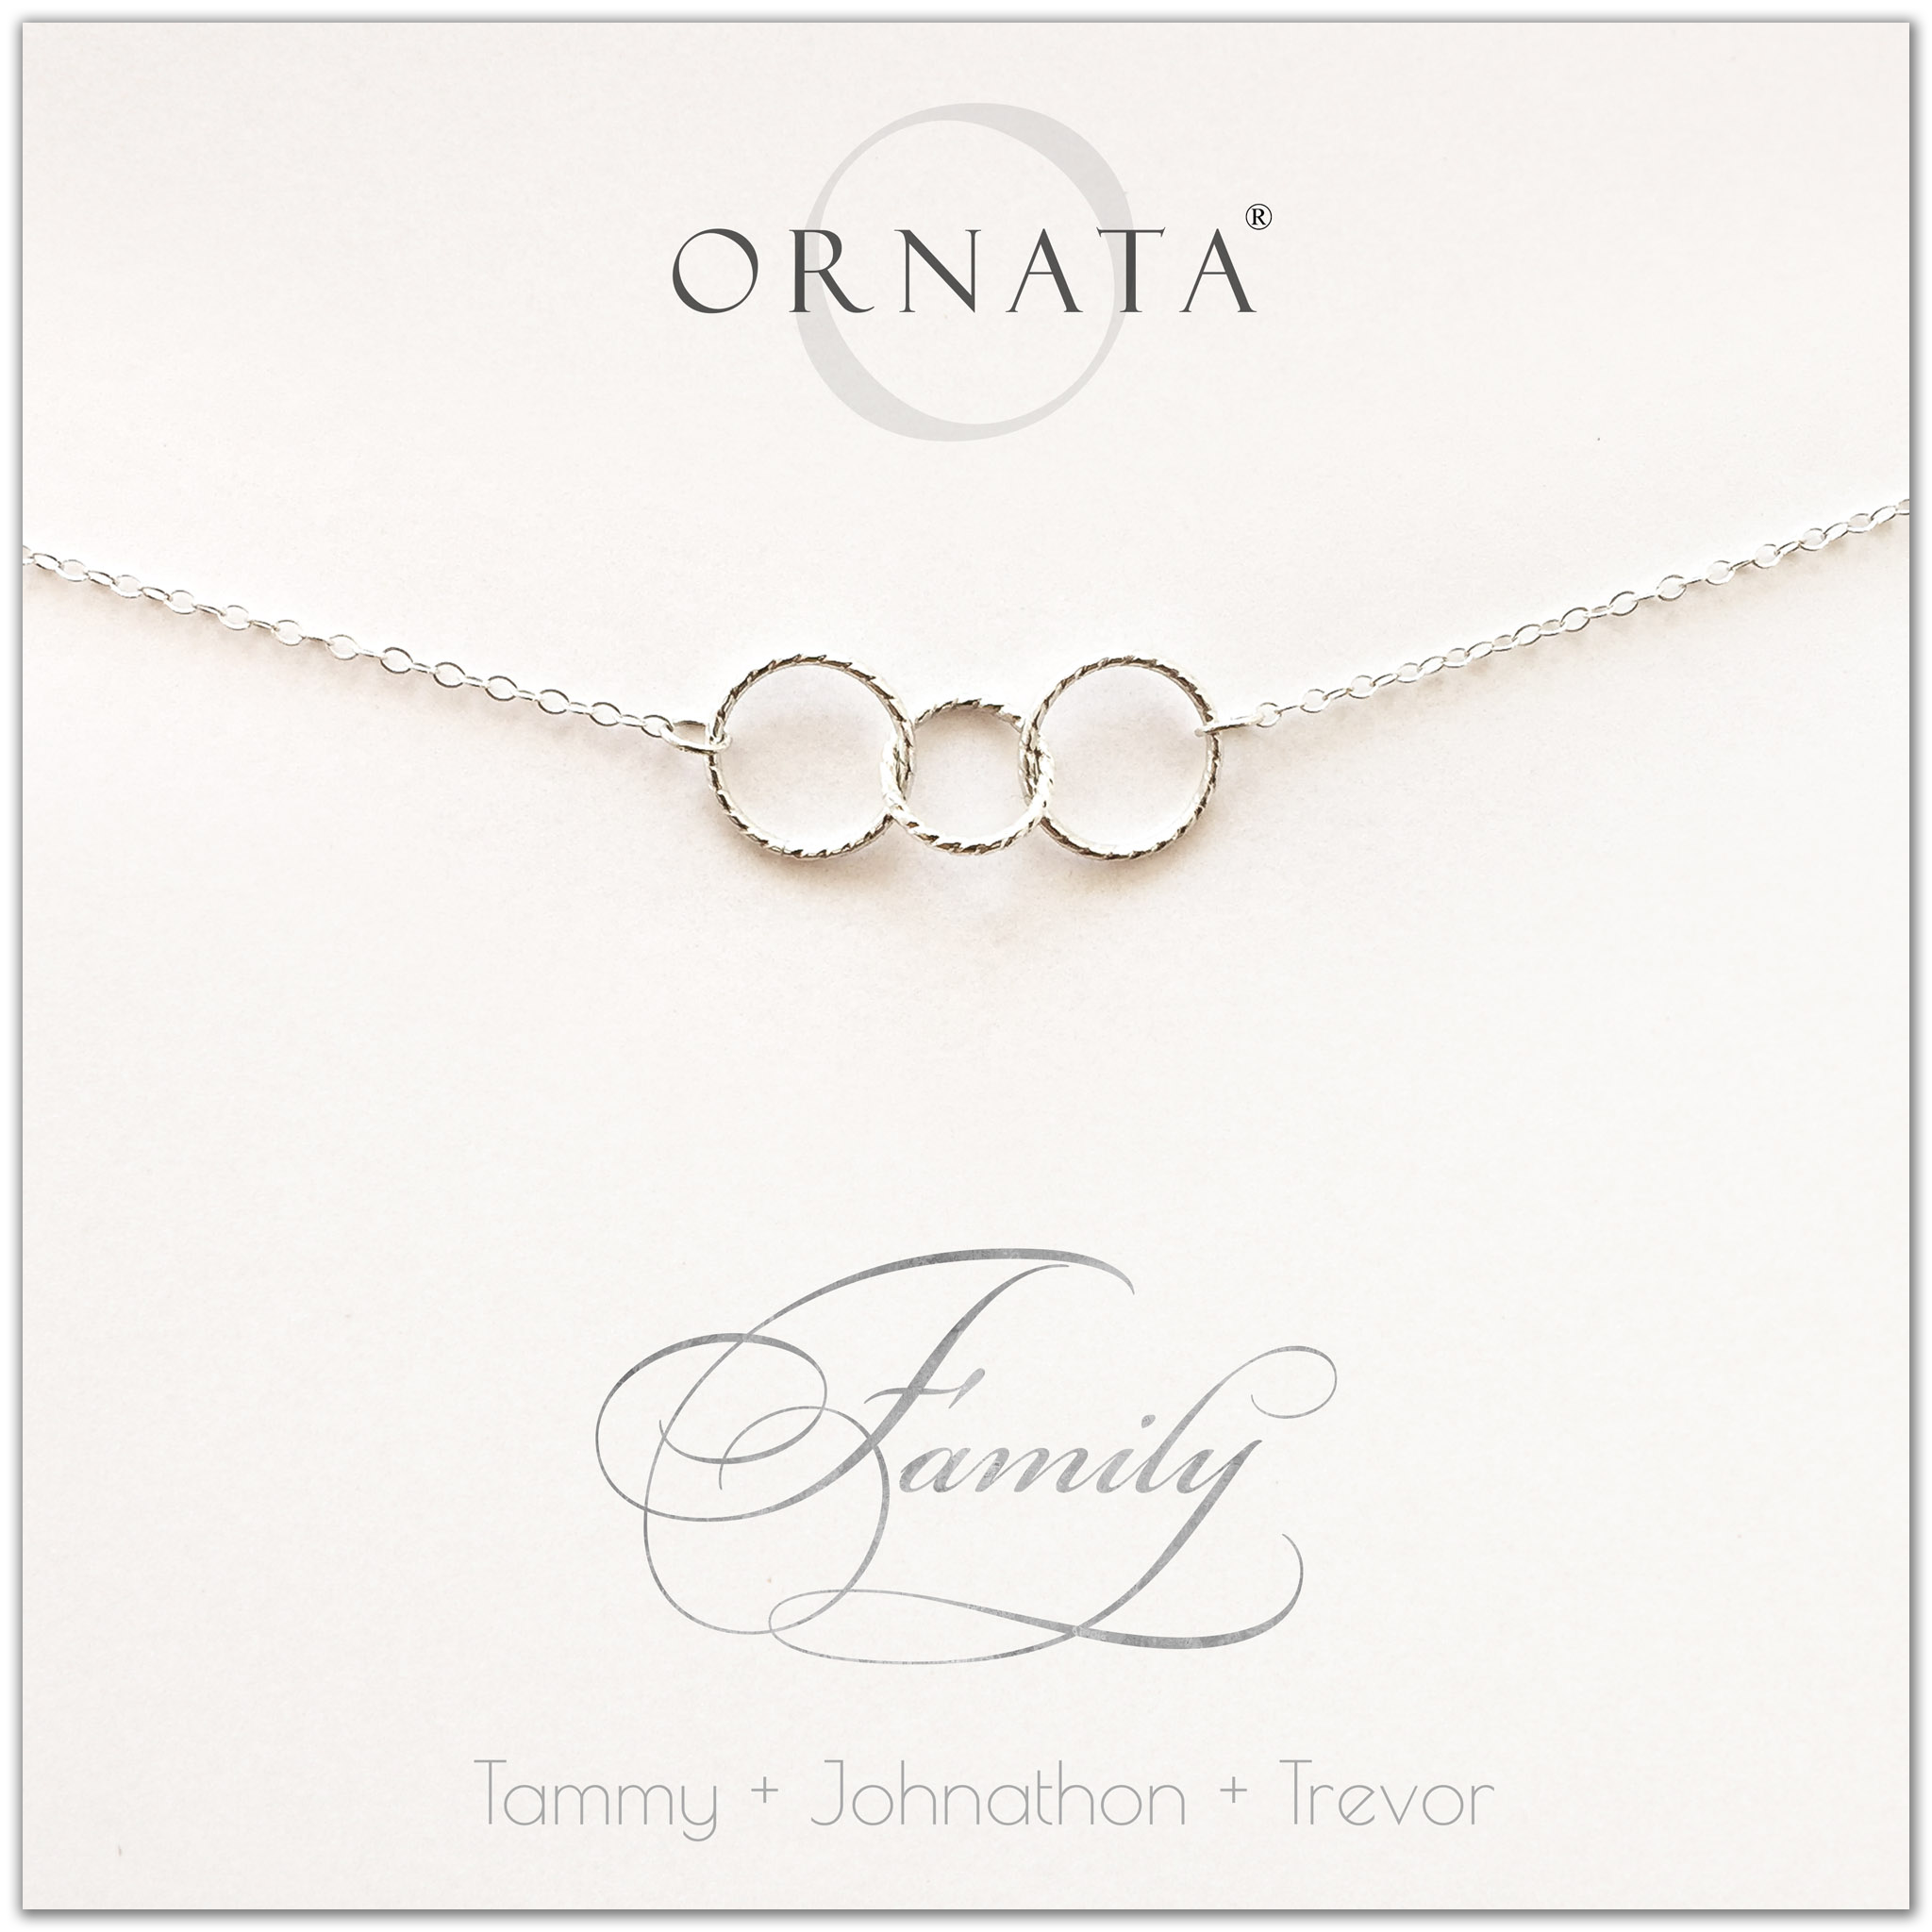 Family of Three Personalized silver necklaces for families of three. Our sterling silver custom family jewelry is a perfect gift for new families, newlyweds, parents, new parents, friends, sisters, mothers, and grandmothers. Family jewelry is also a good gift for Mother's Day.